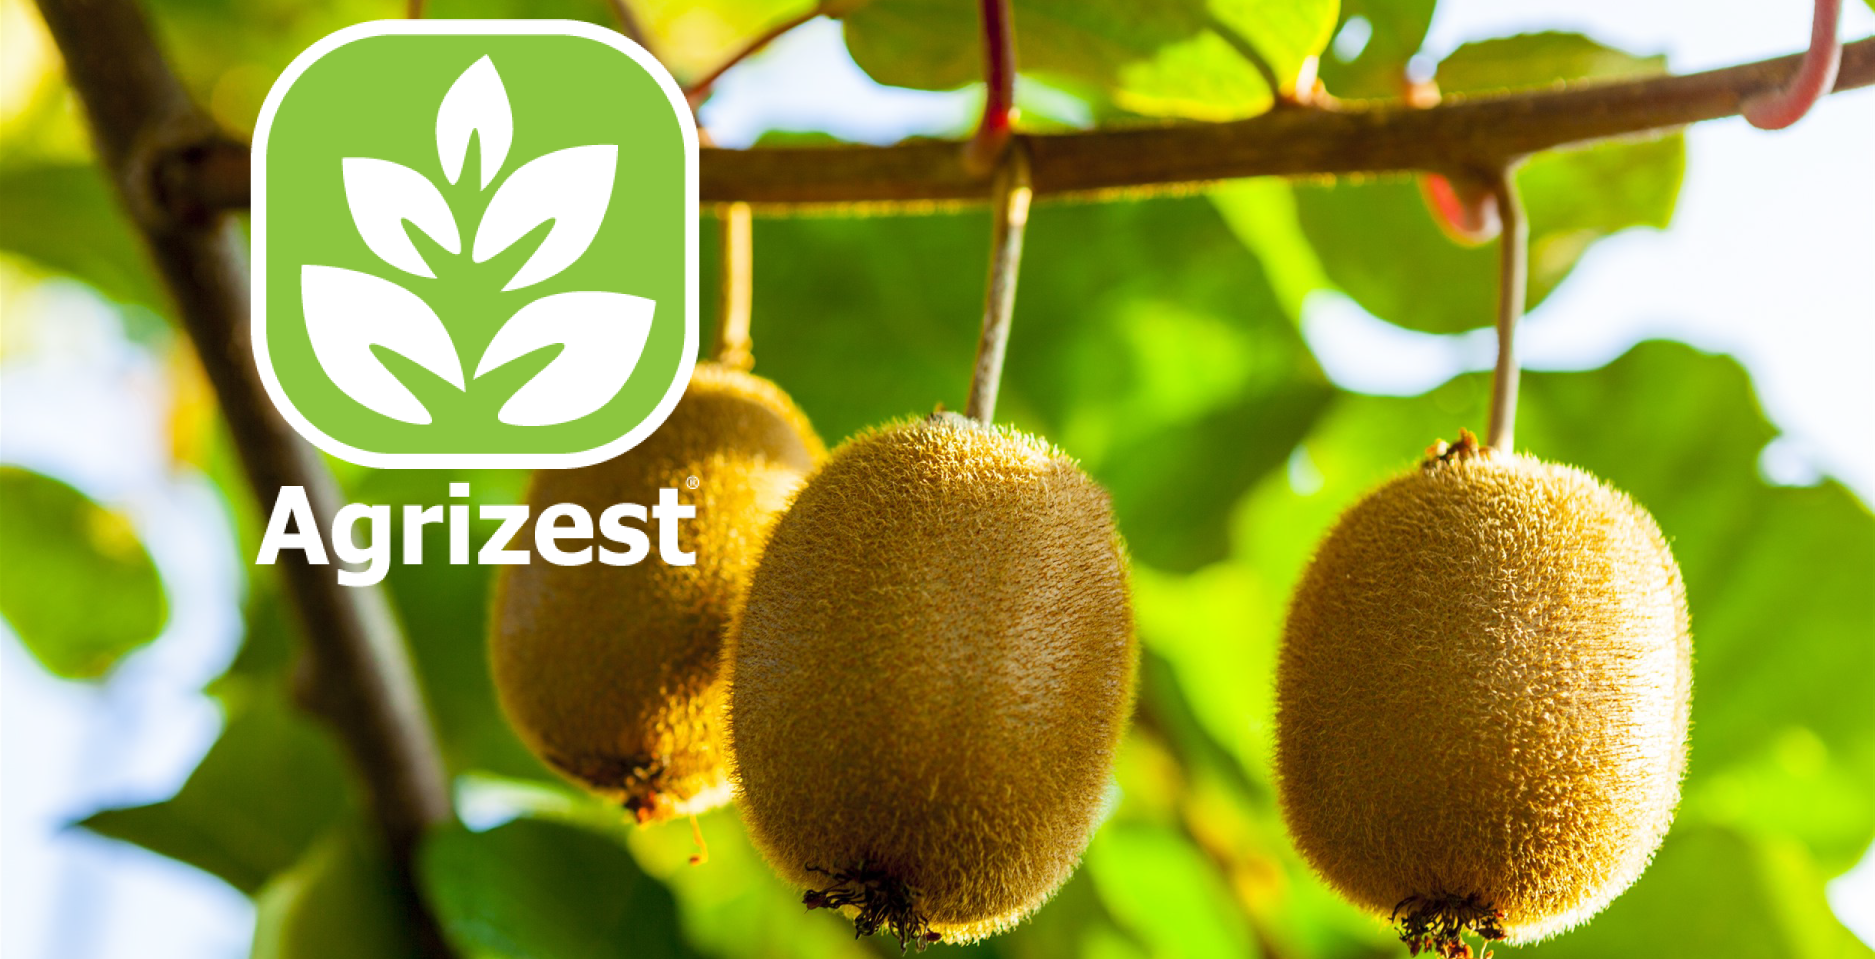 Agrizest is an elicitor of the phenylpropanoid pathway for plant health and orchard gate returns.